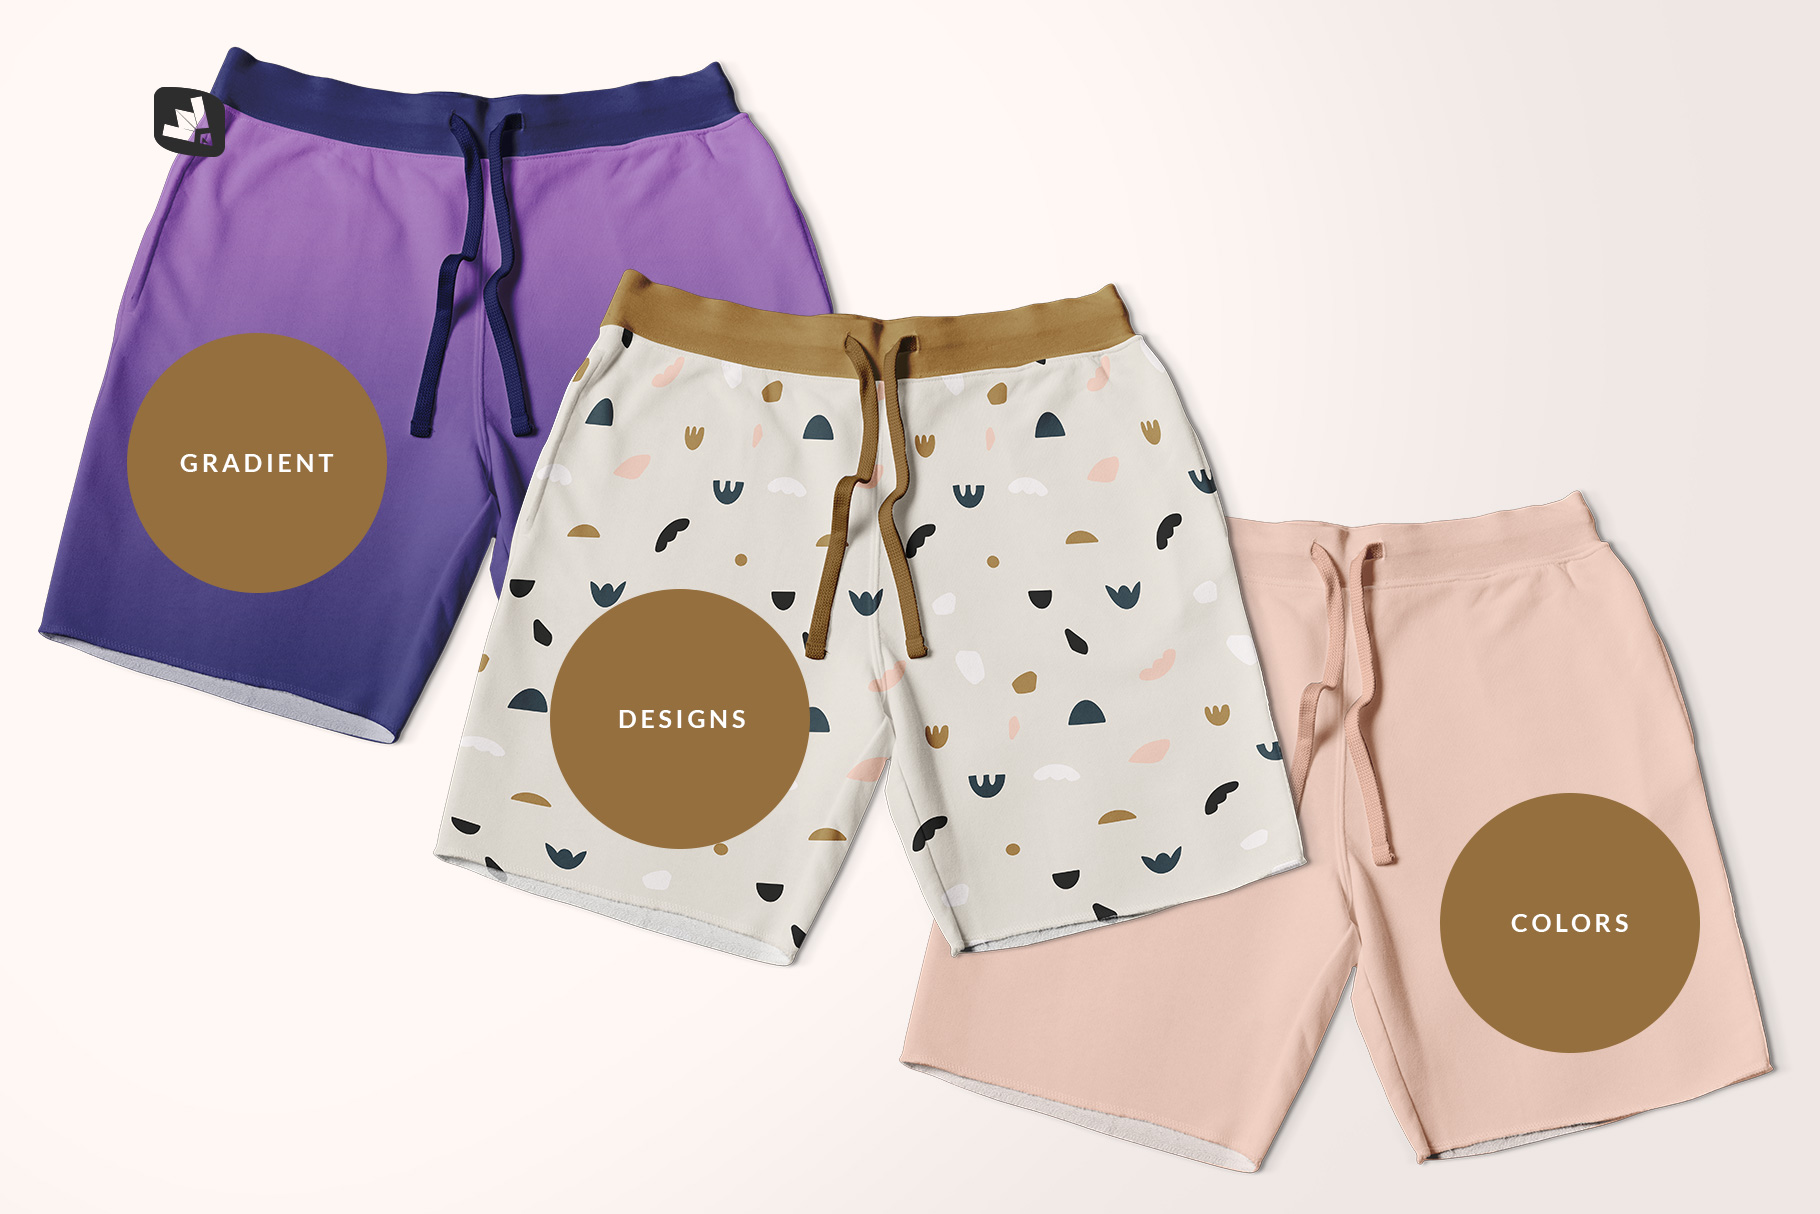 types of the top view cotton shorts mockup